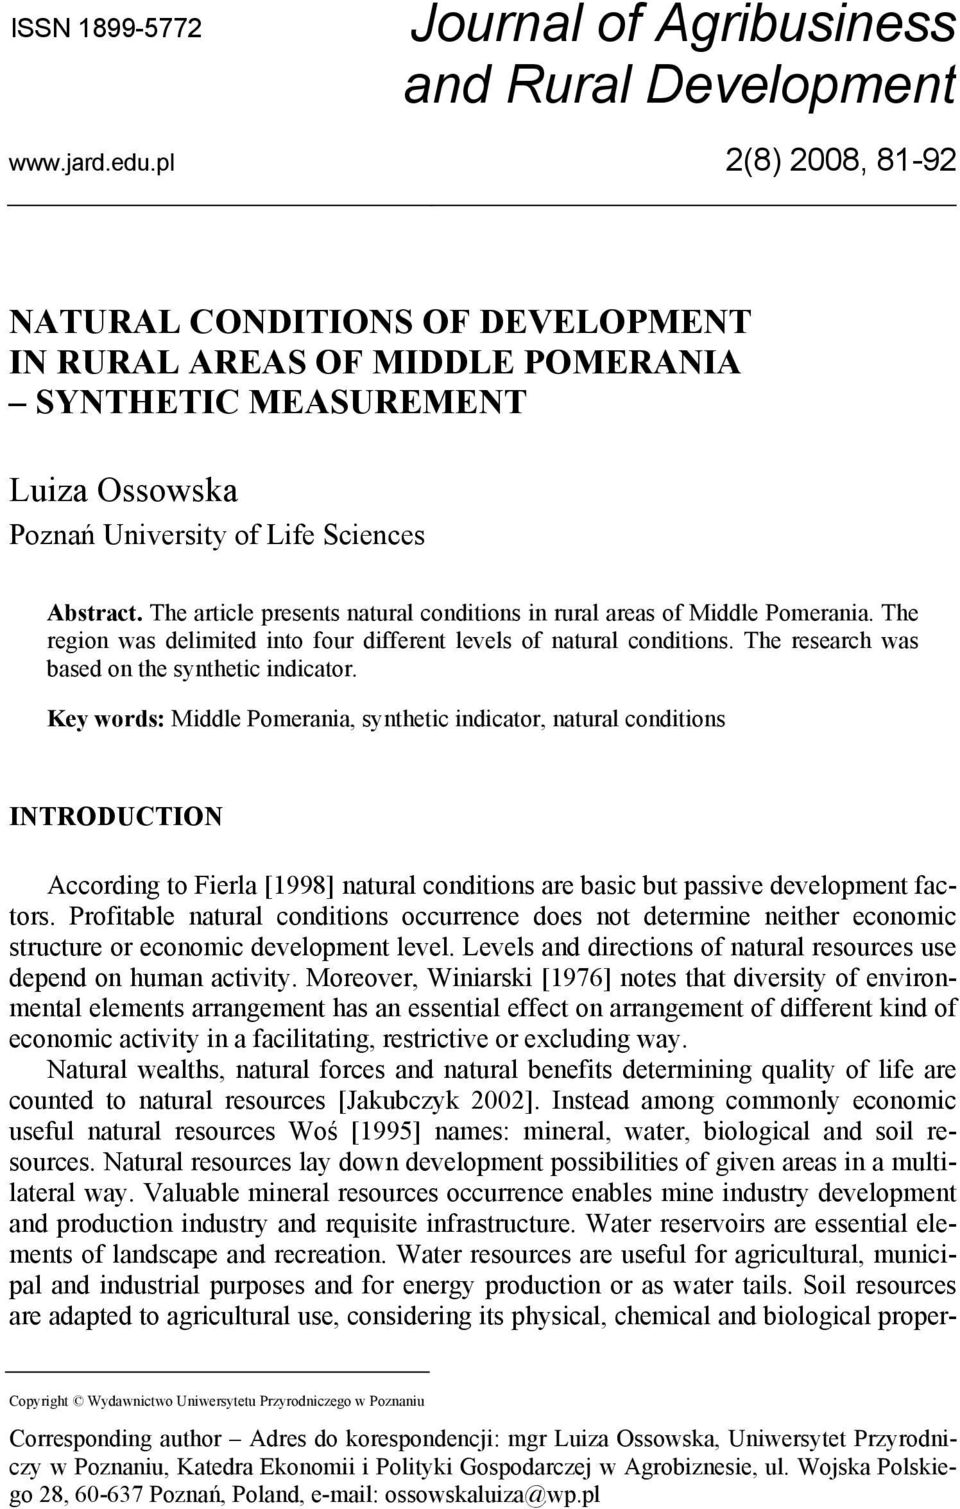 The article presents natural conditions in rural areas of Middle Pomerania. The region was delimited into four different levels of natural conditions.